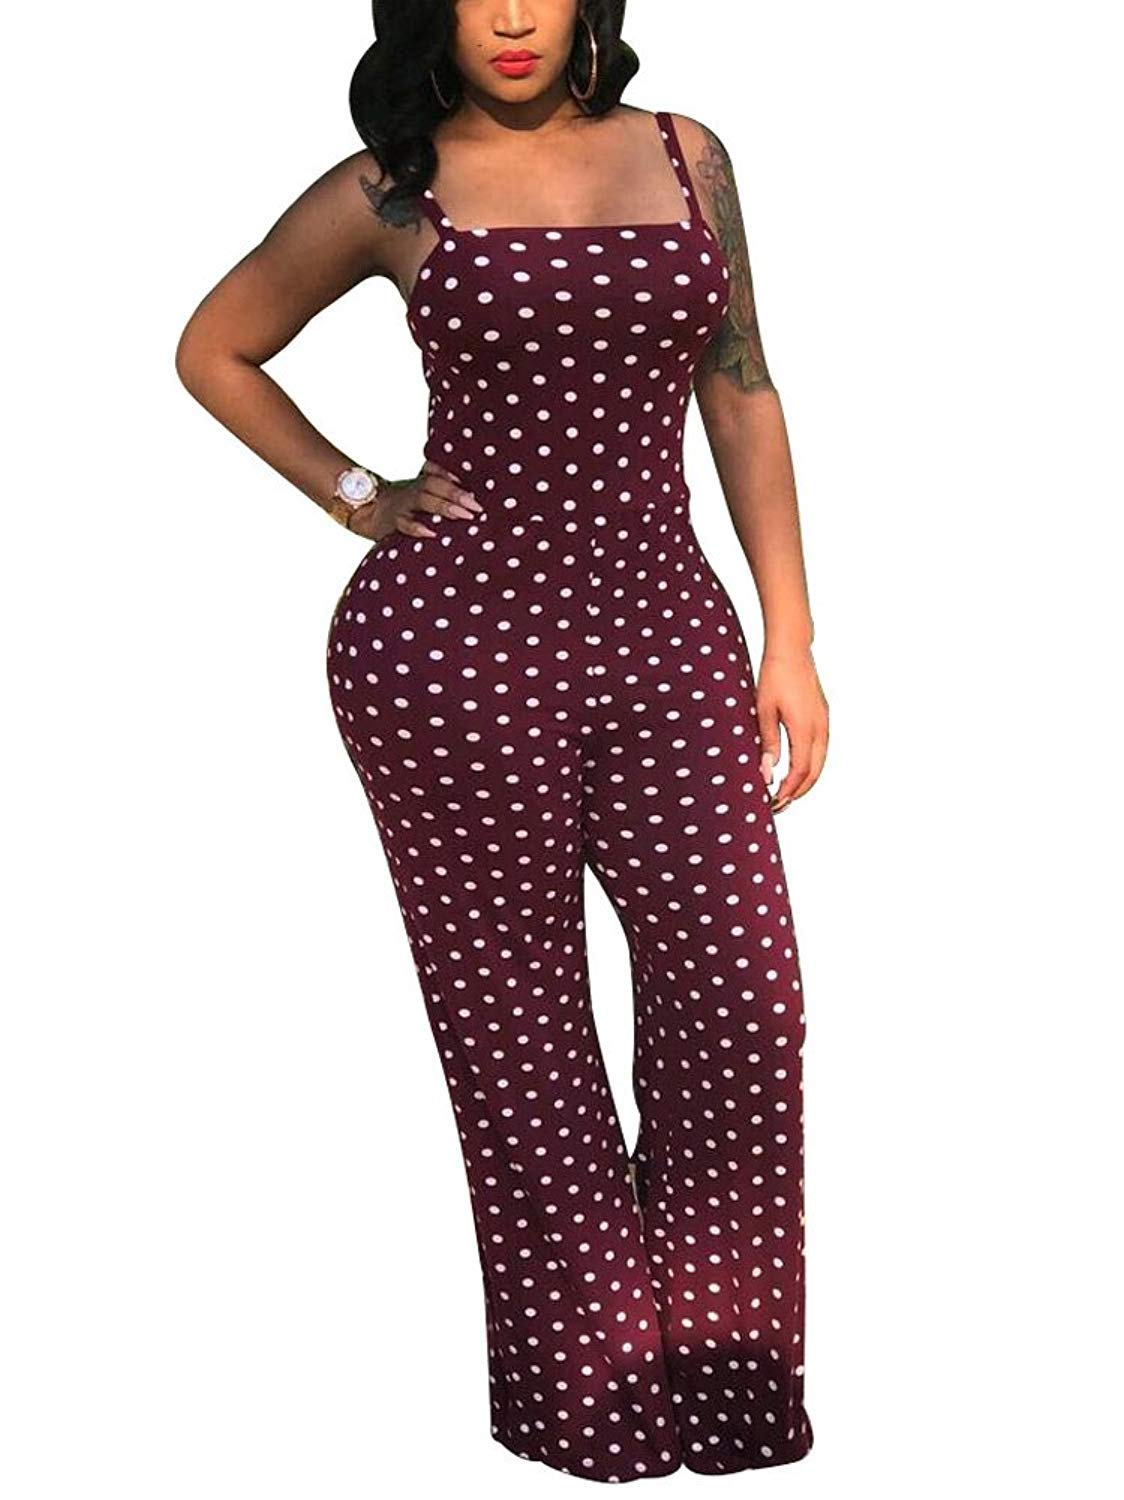 Yeshire Women's Spaghetti Strap Polka Dot Wide Leg Bodycon Jumpsuits Rompers Long Pants XX-Large Maroon